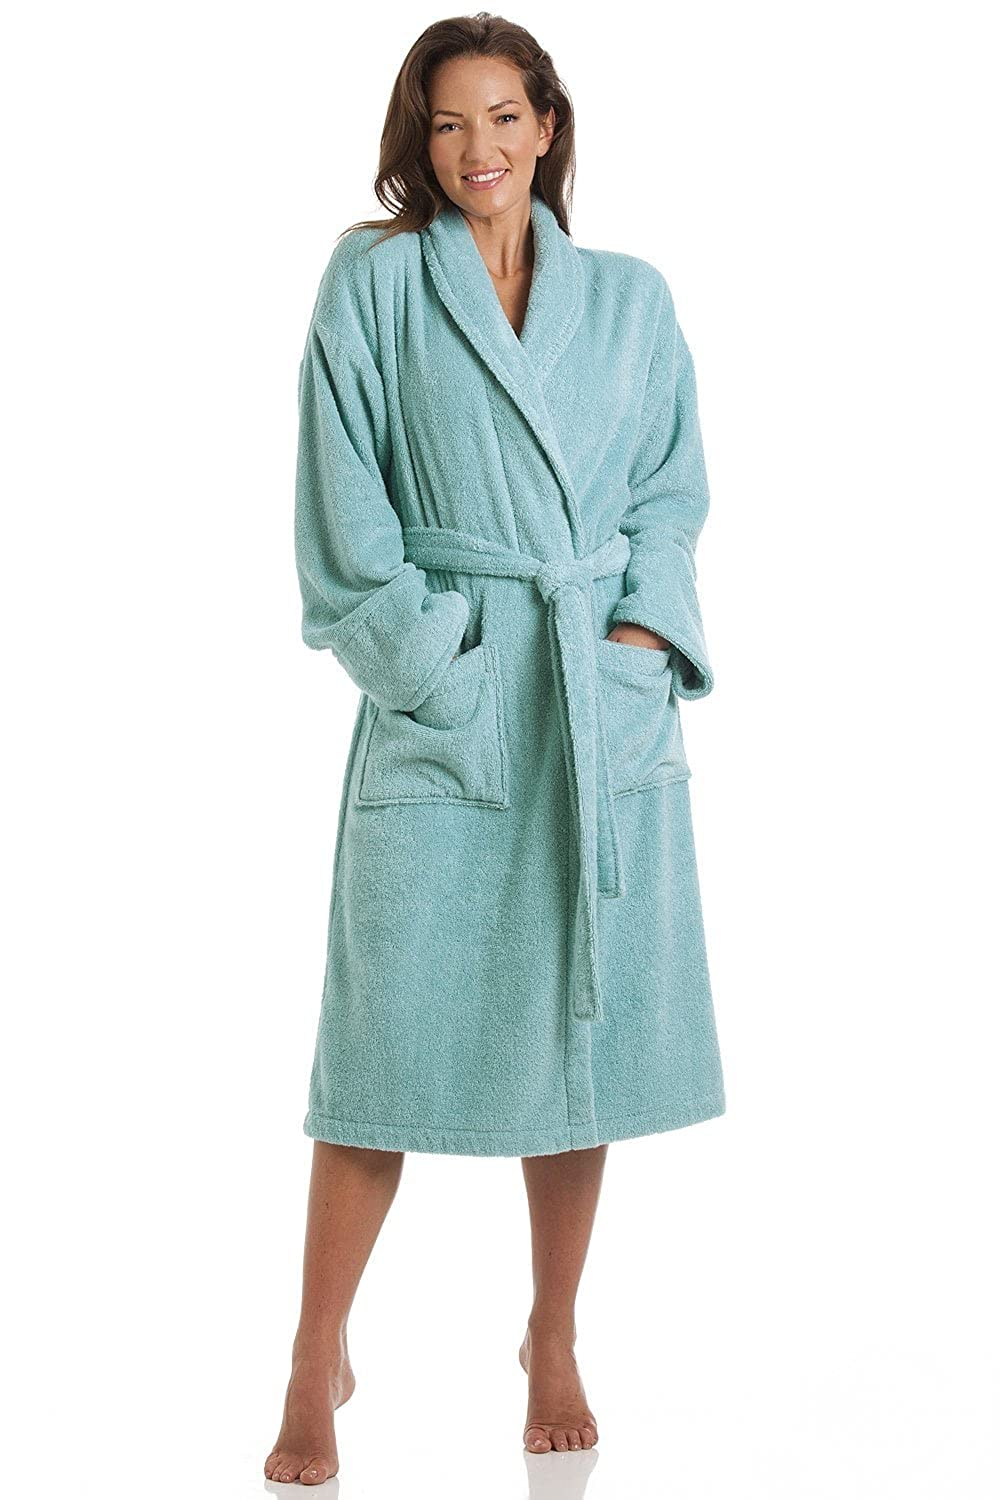 Camille Womens Luxury Aqua Blue 100% Cotton Towelling Bath Robe